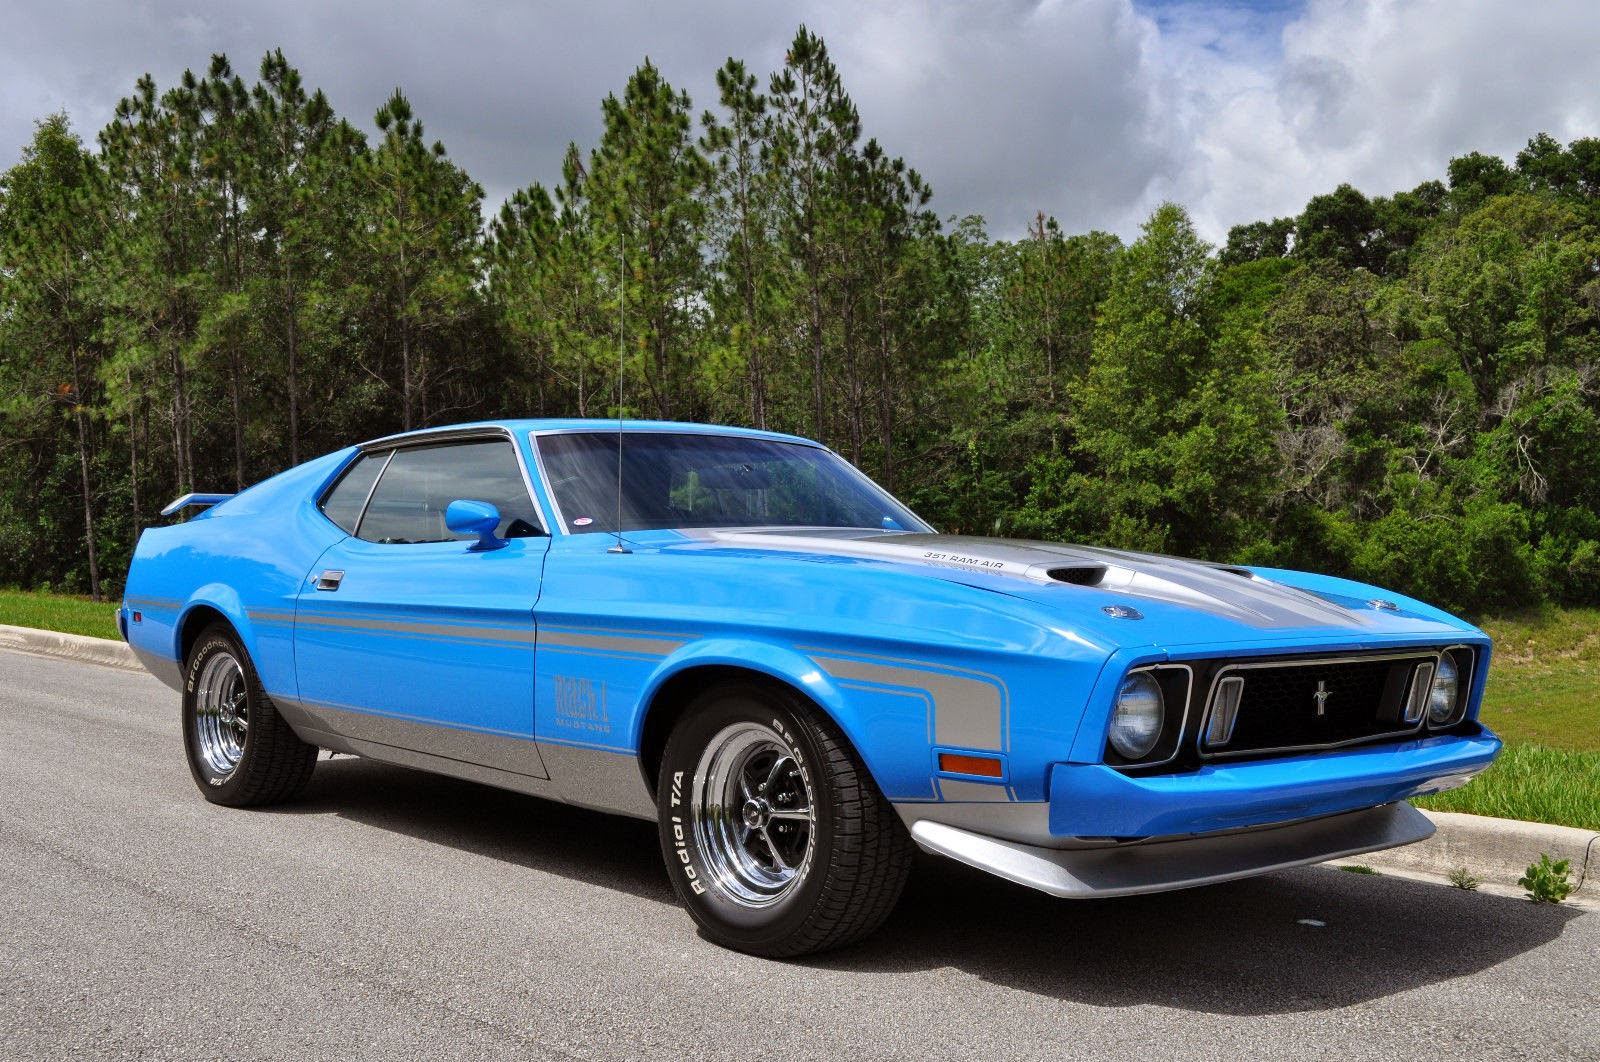 1973 ford mustang mach 1 q code for sale american muscle cars. Black Bedroom Furniture Sets. Home Design Ideas